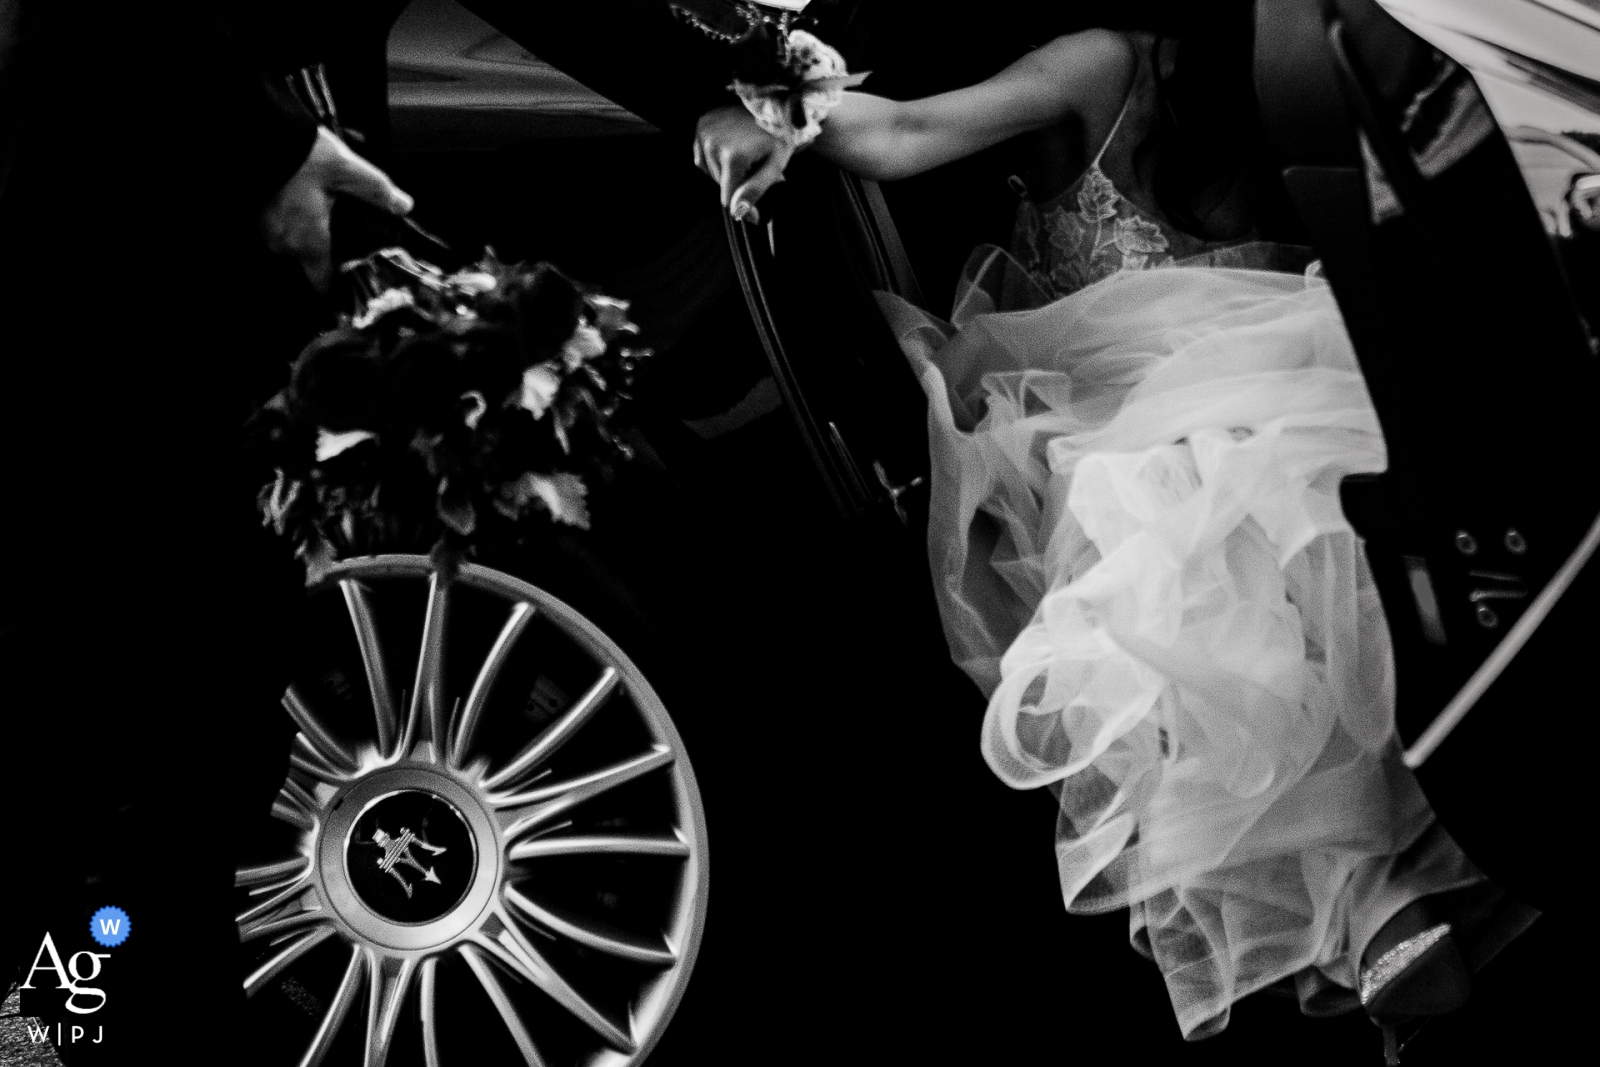 China photographer for weddings - the bride exits a fancy car before she enters her Wedding reception